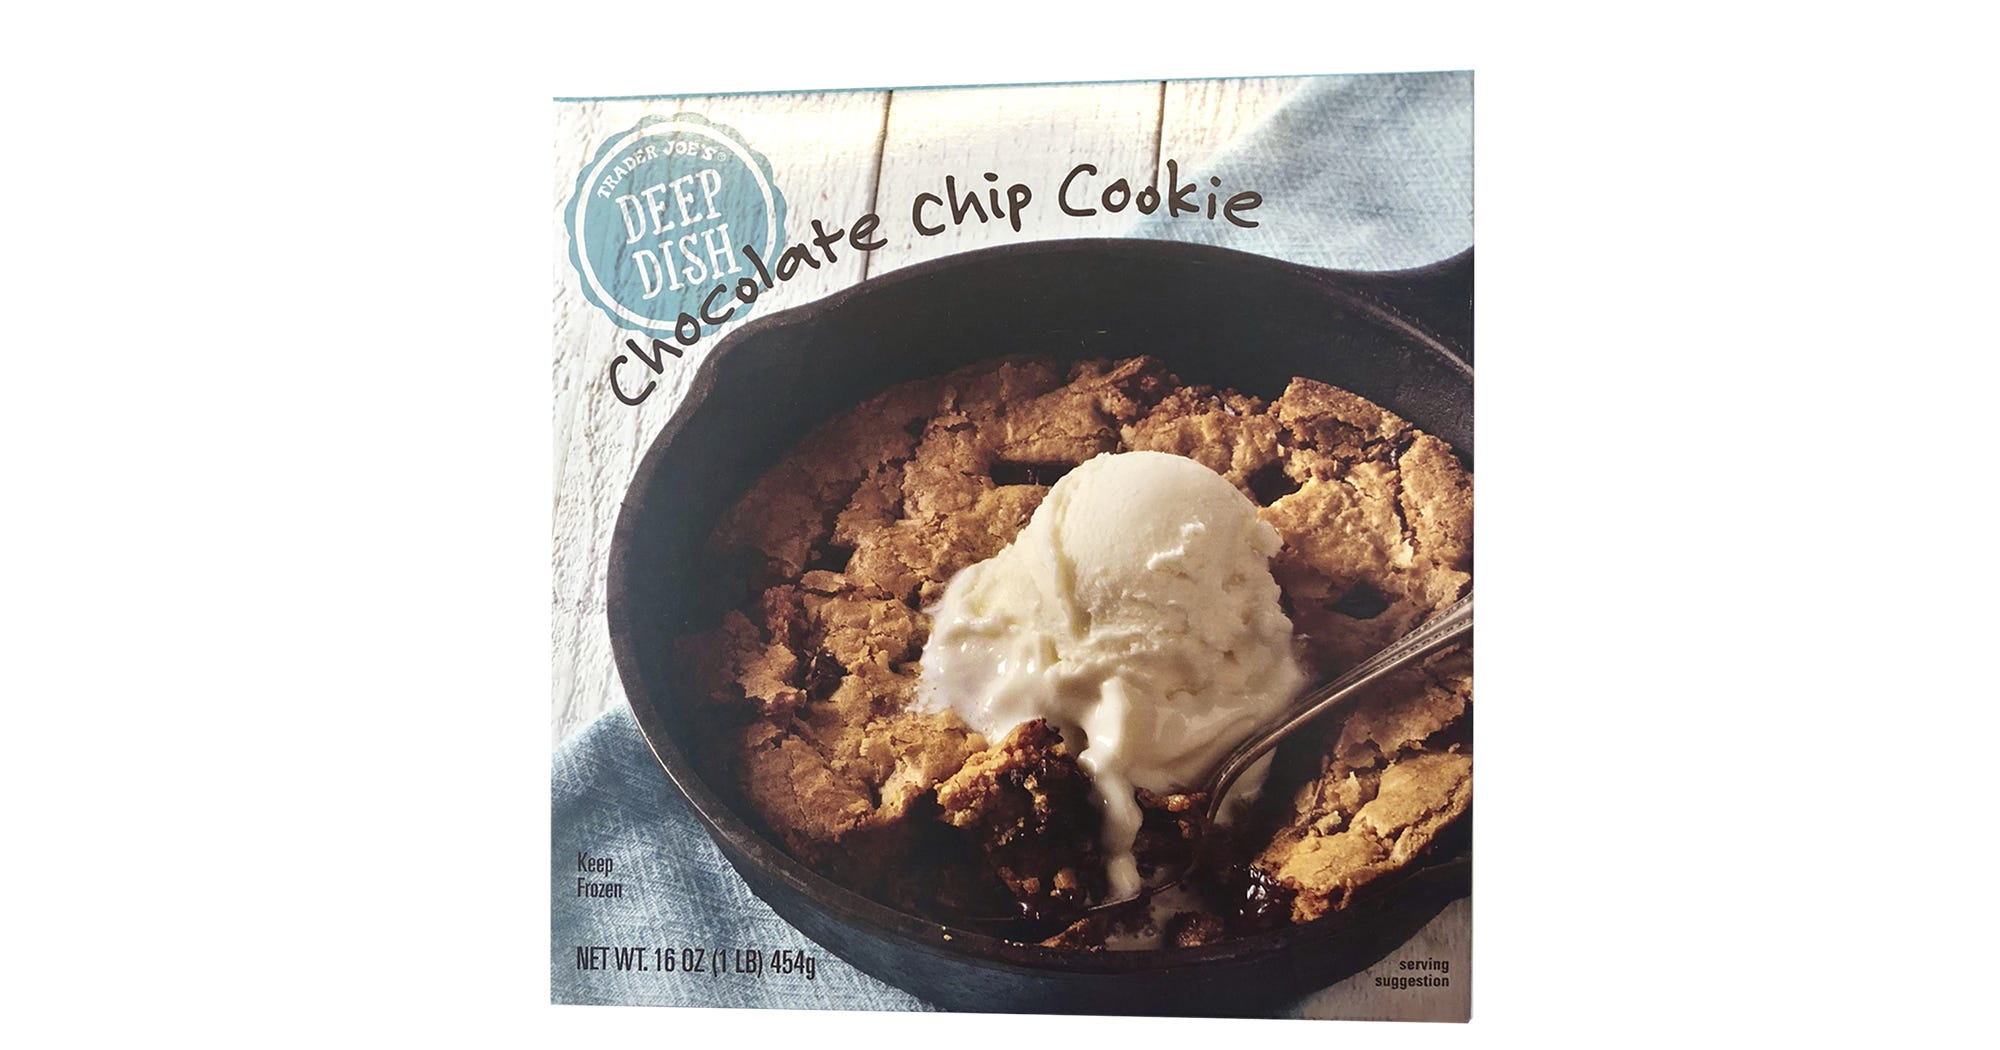 Trader Joes New Deep Dish Chocolate Chip Cookie Review